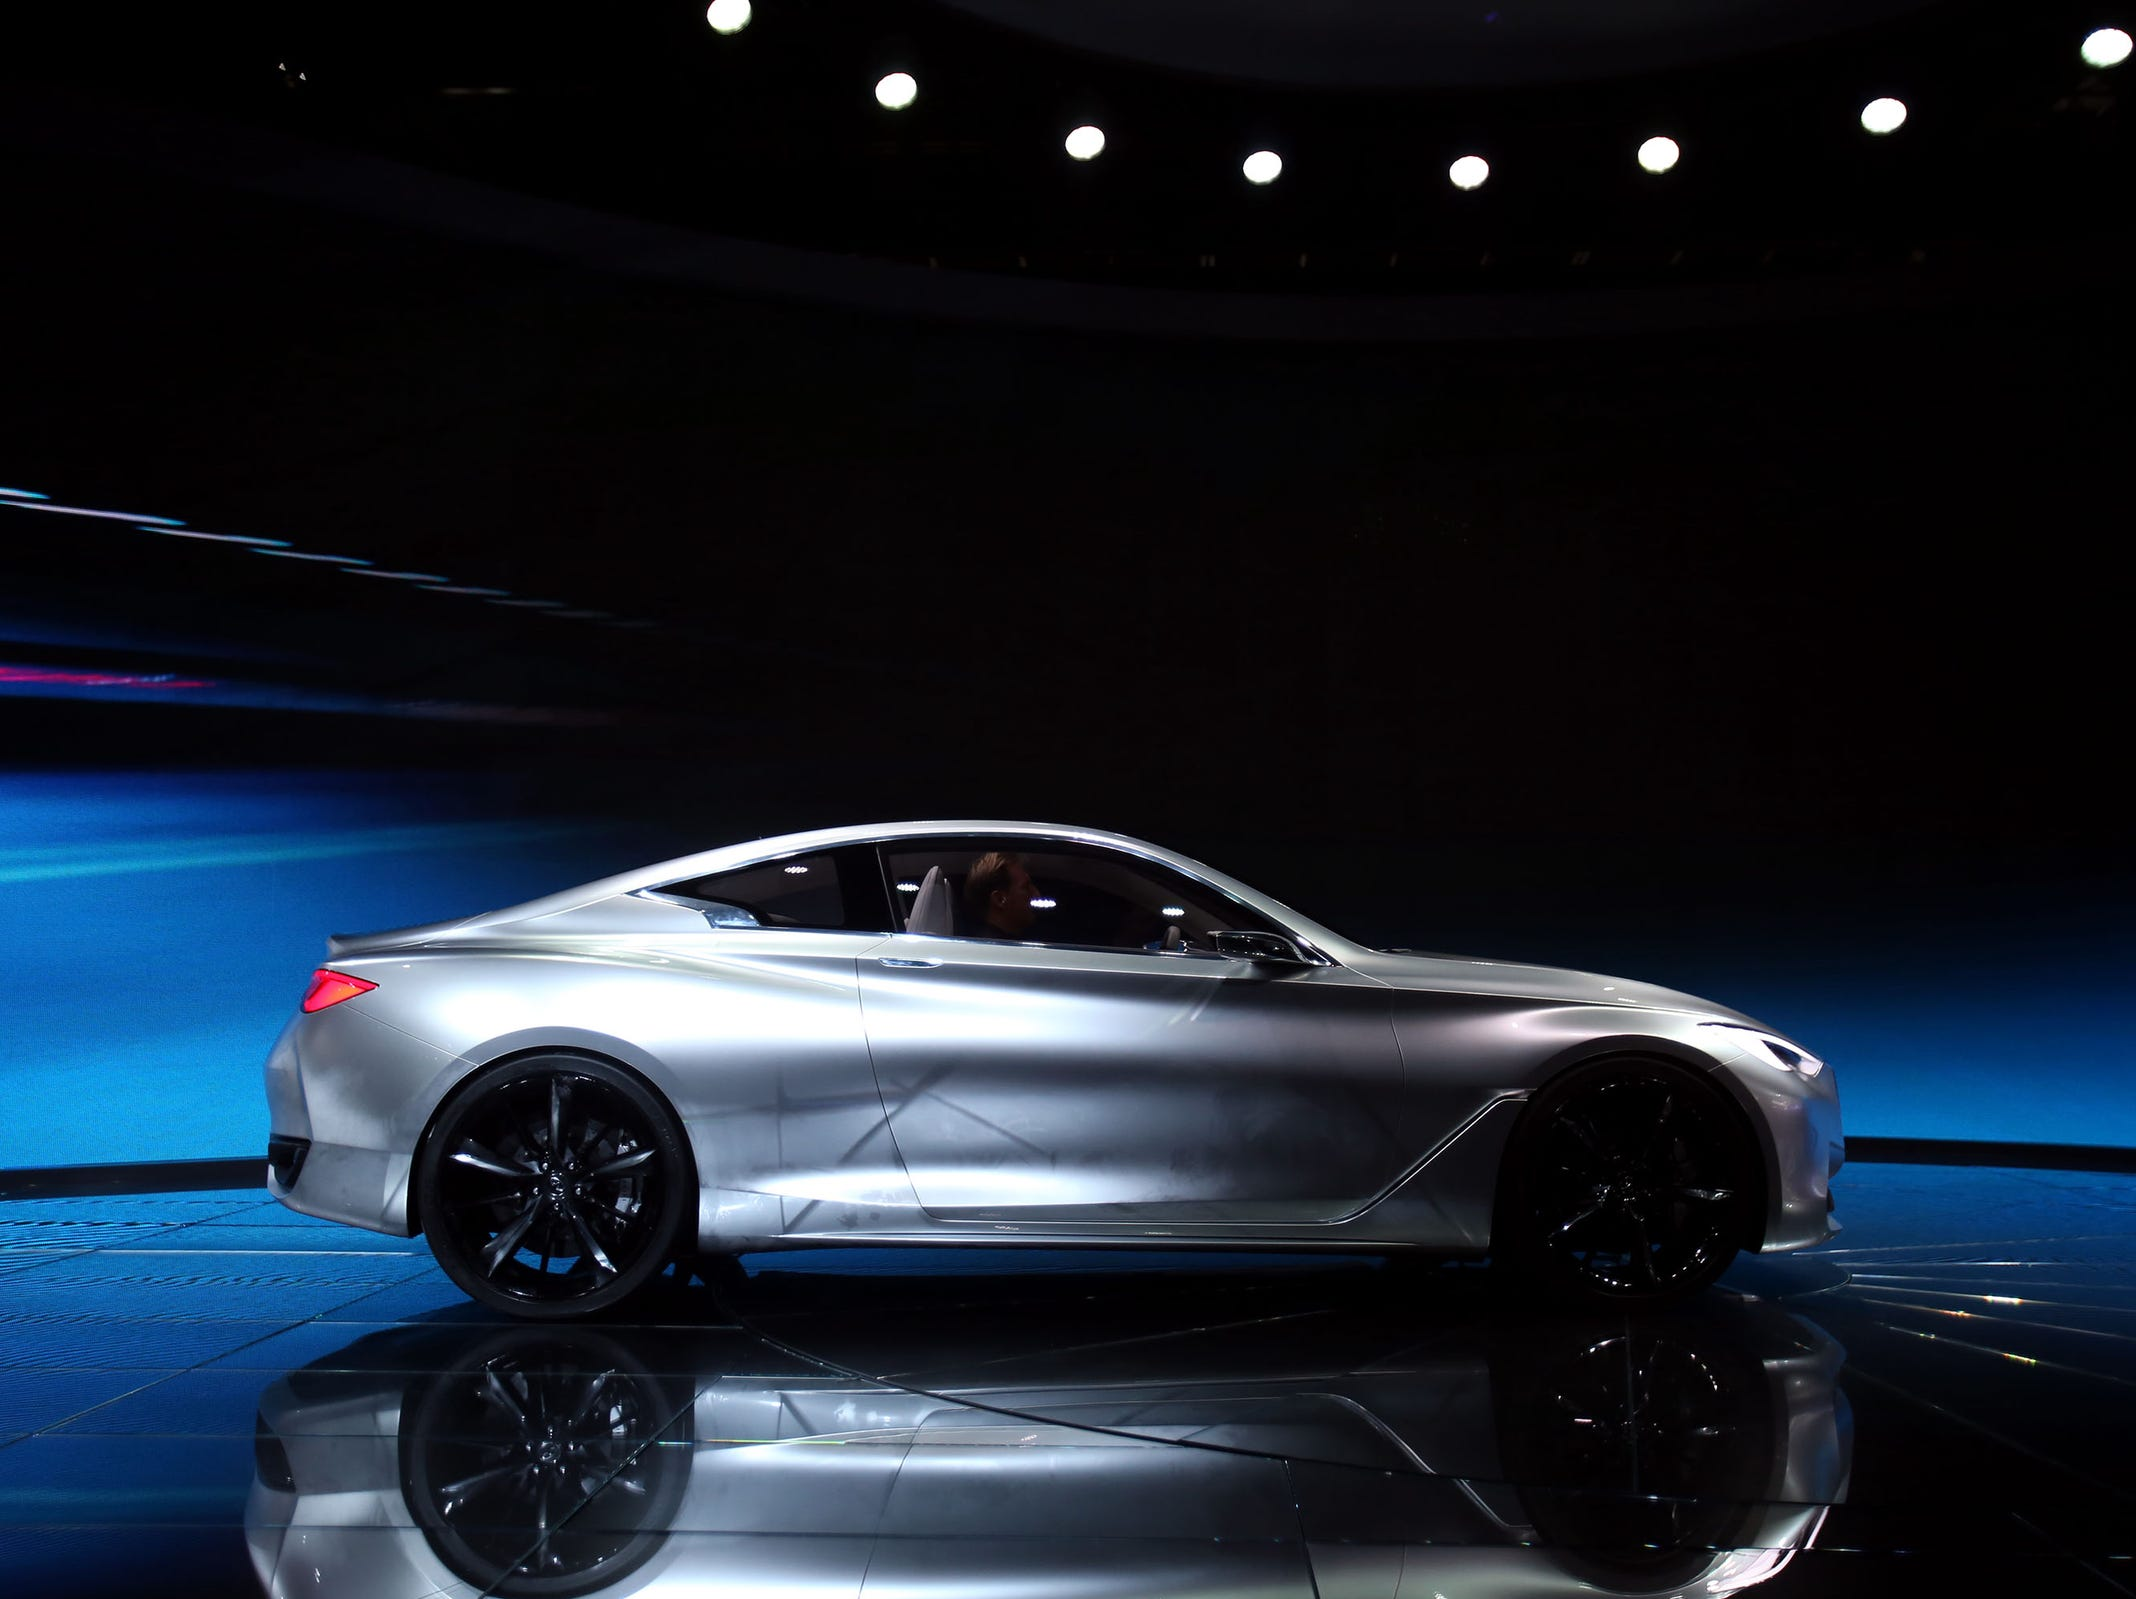 Infiniti reveals Q60 luxury coupe concept at the 2015 North American International Auto Show at Cobo Center on Tuesday, Jan.13, 2015 in Detroit.